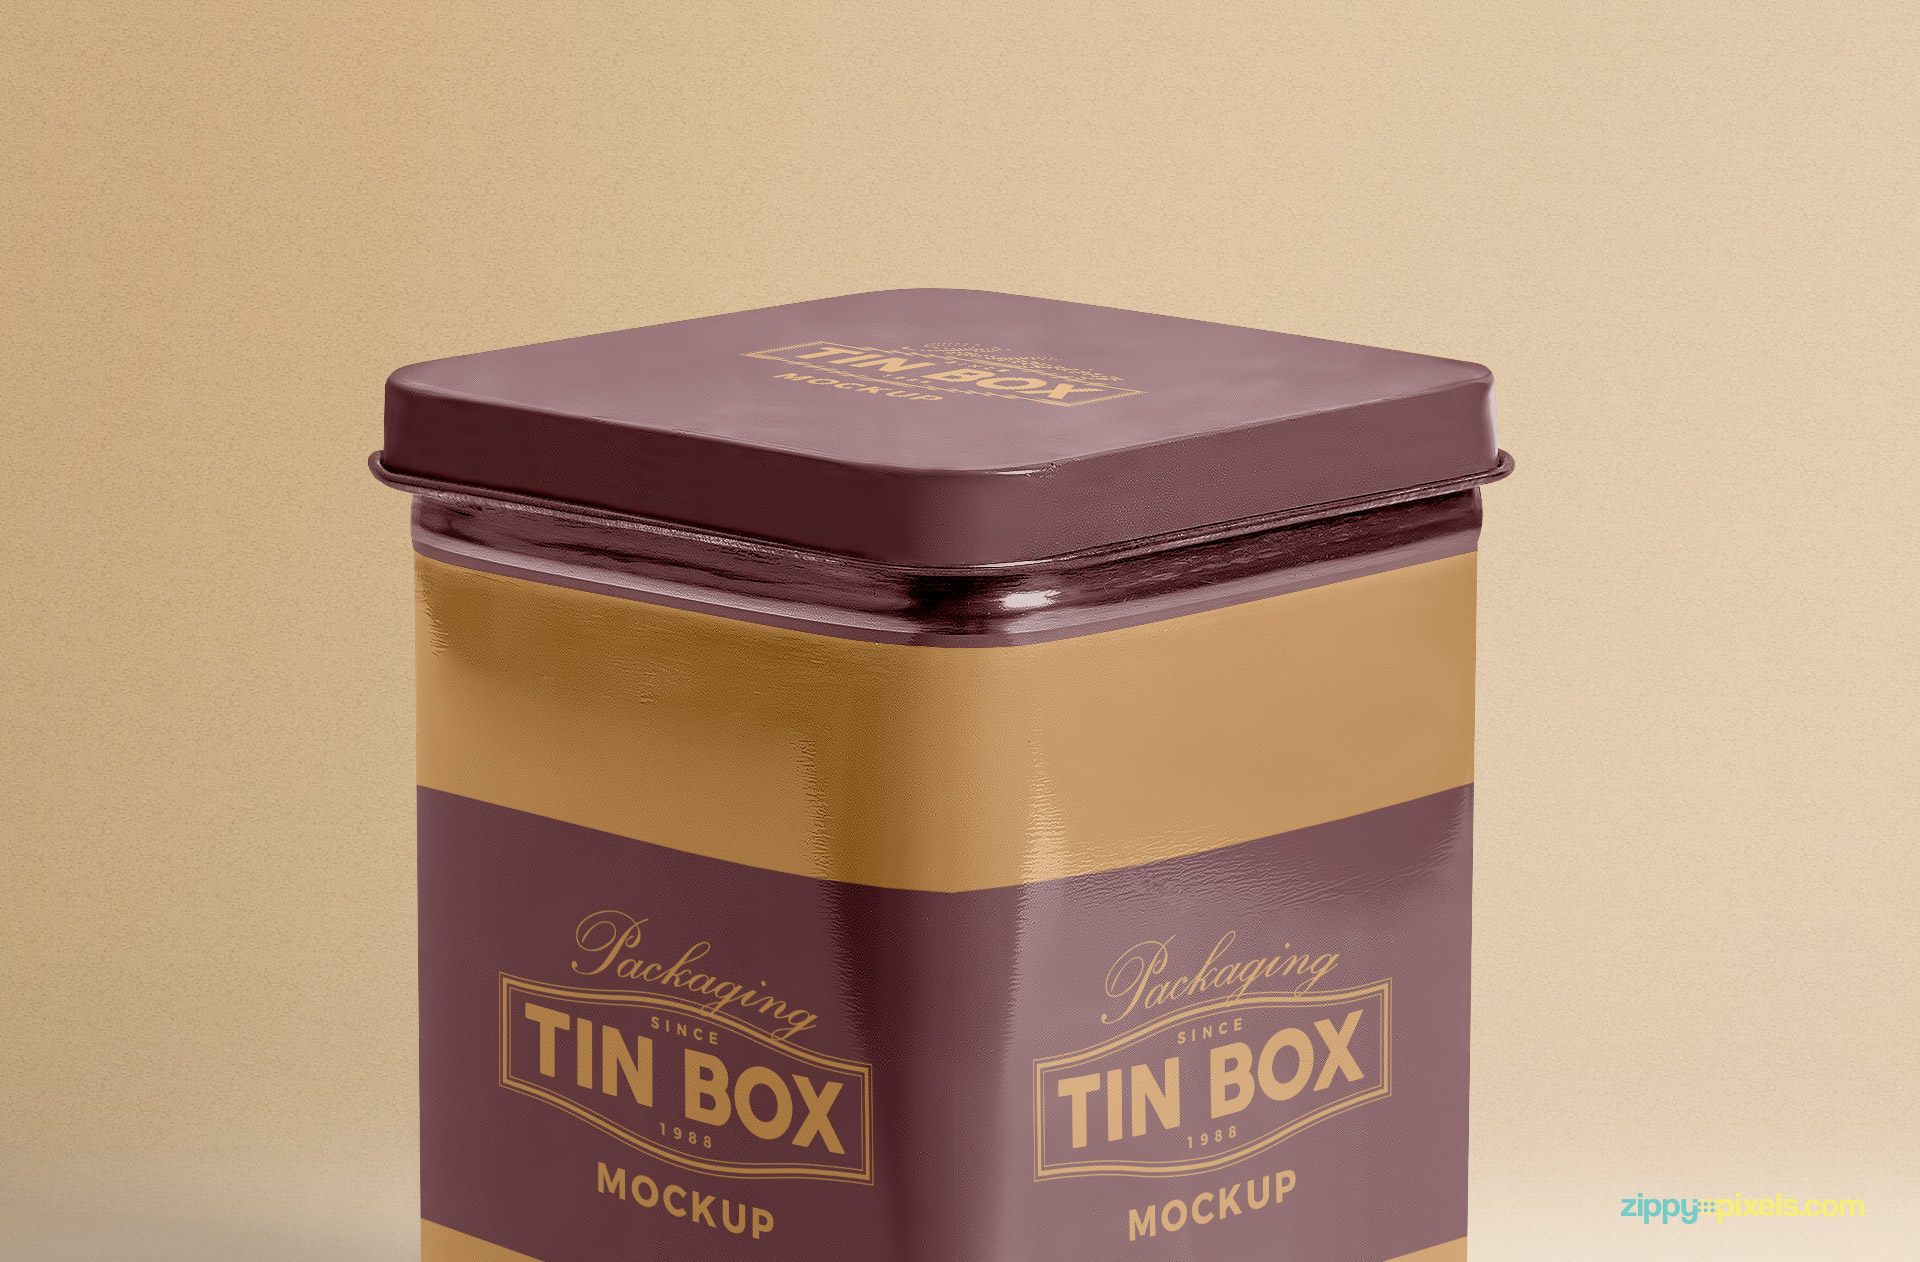 Customize top design of this tin box mockup.